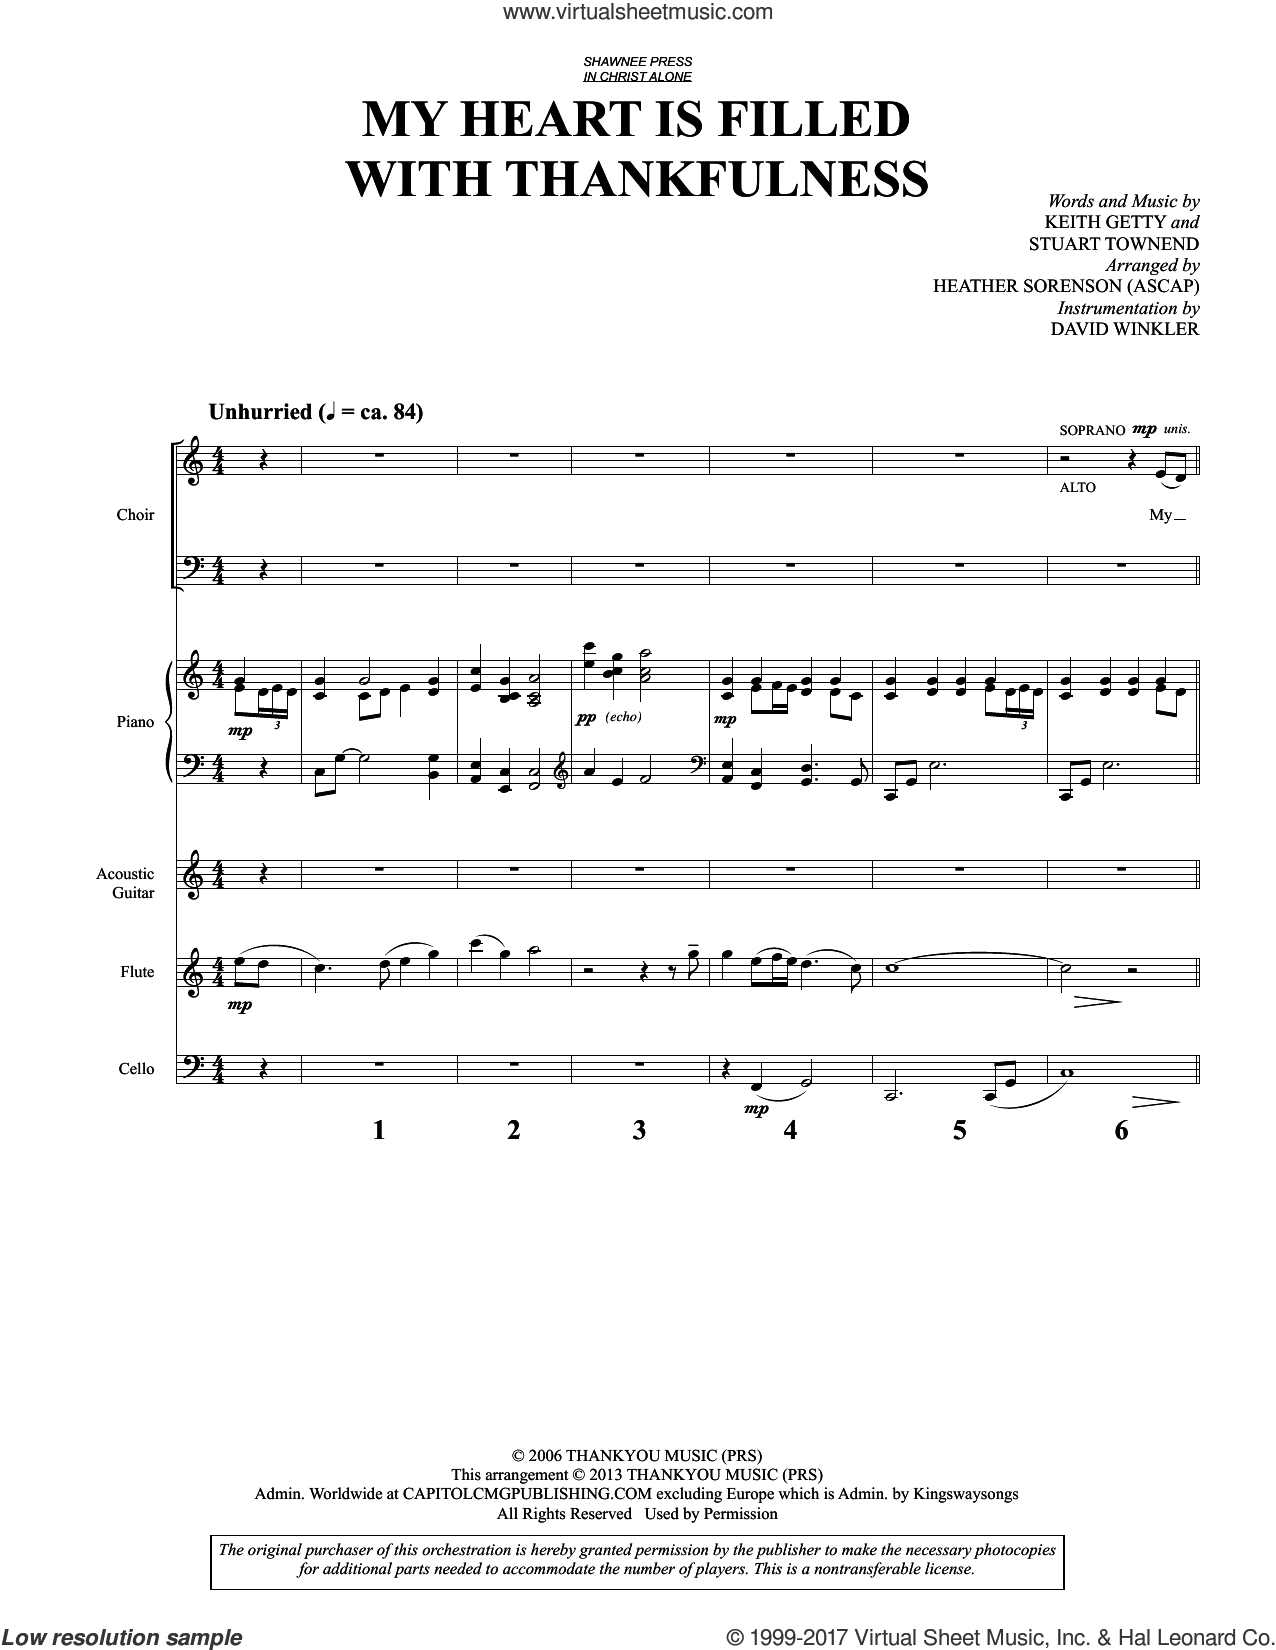 My Heart Is Filled with Thankfulness (COMPLETE) sheet music for orchestra/band by Heather Sorenson, Keith & Kristyn Getty, Keith Getty and Stuart Townend, intermediate skill level